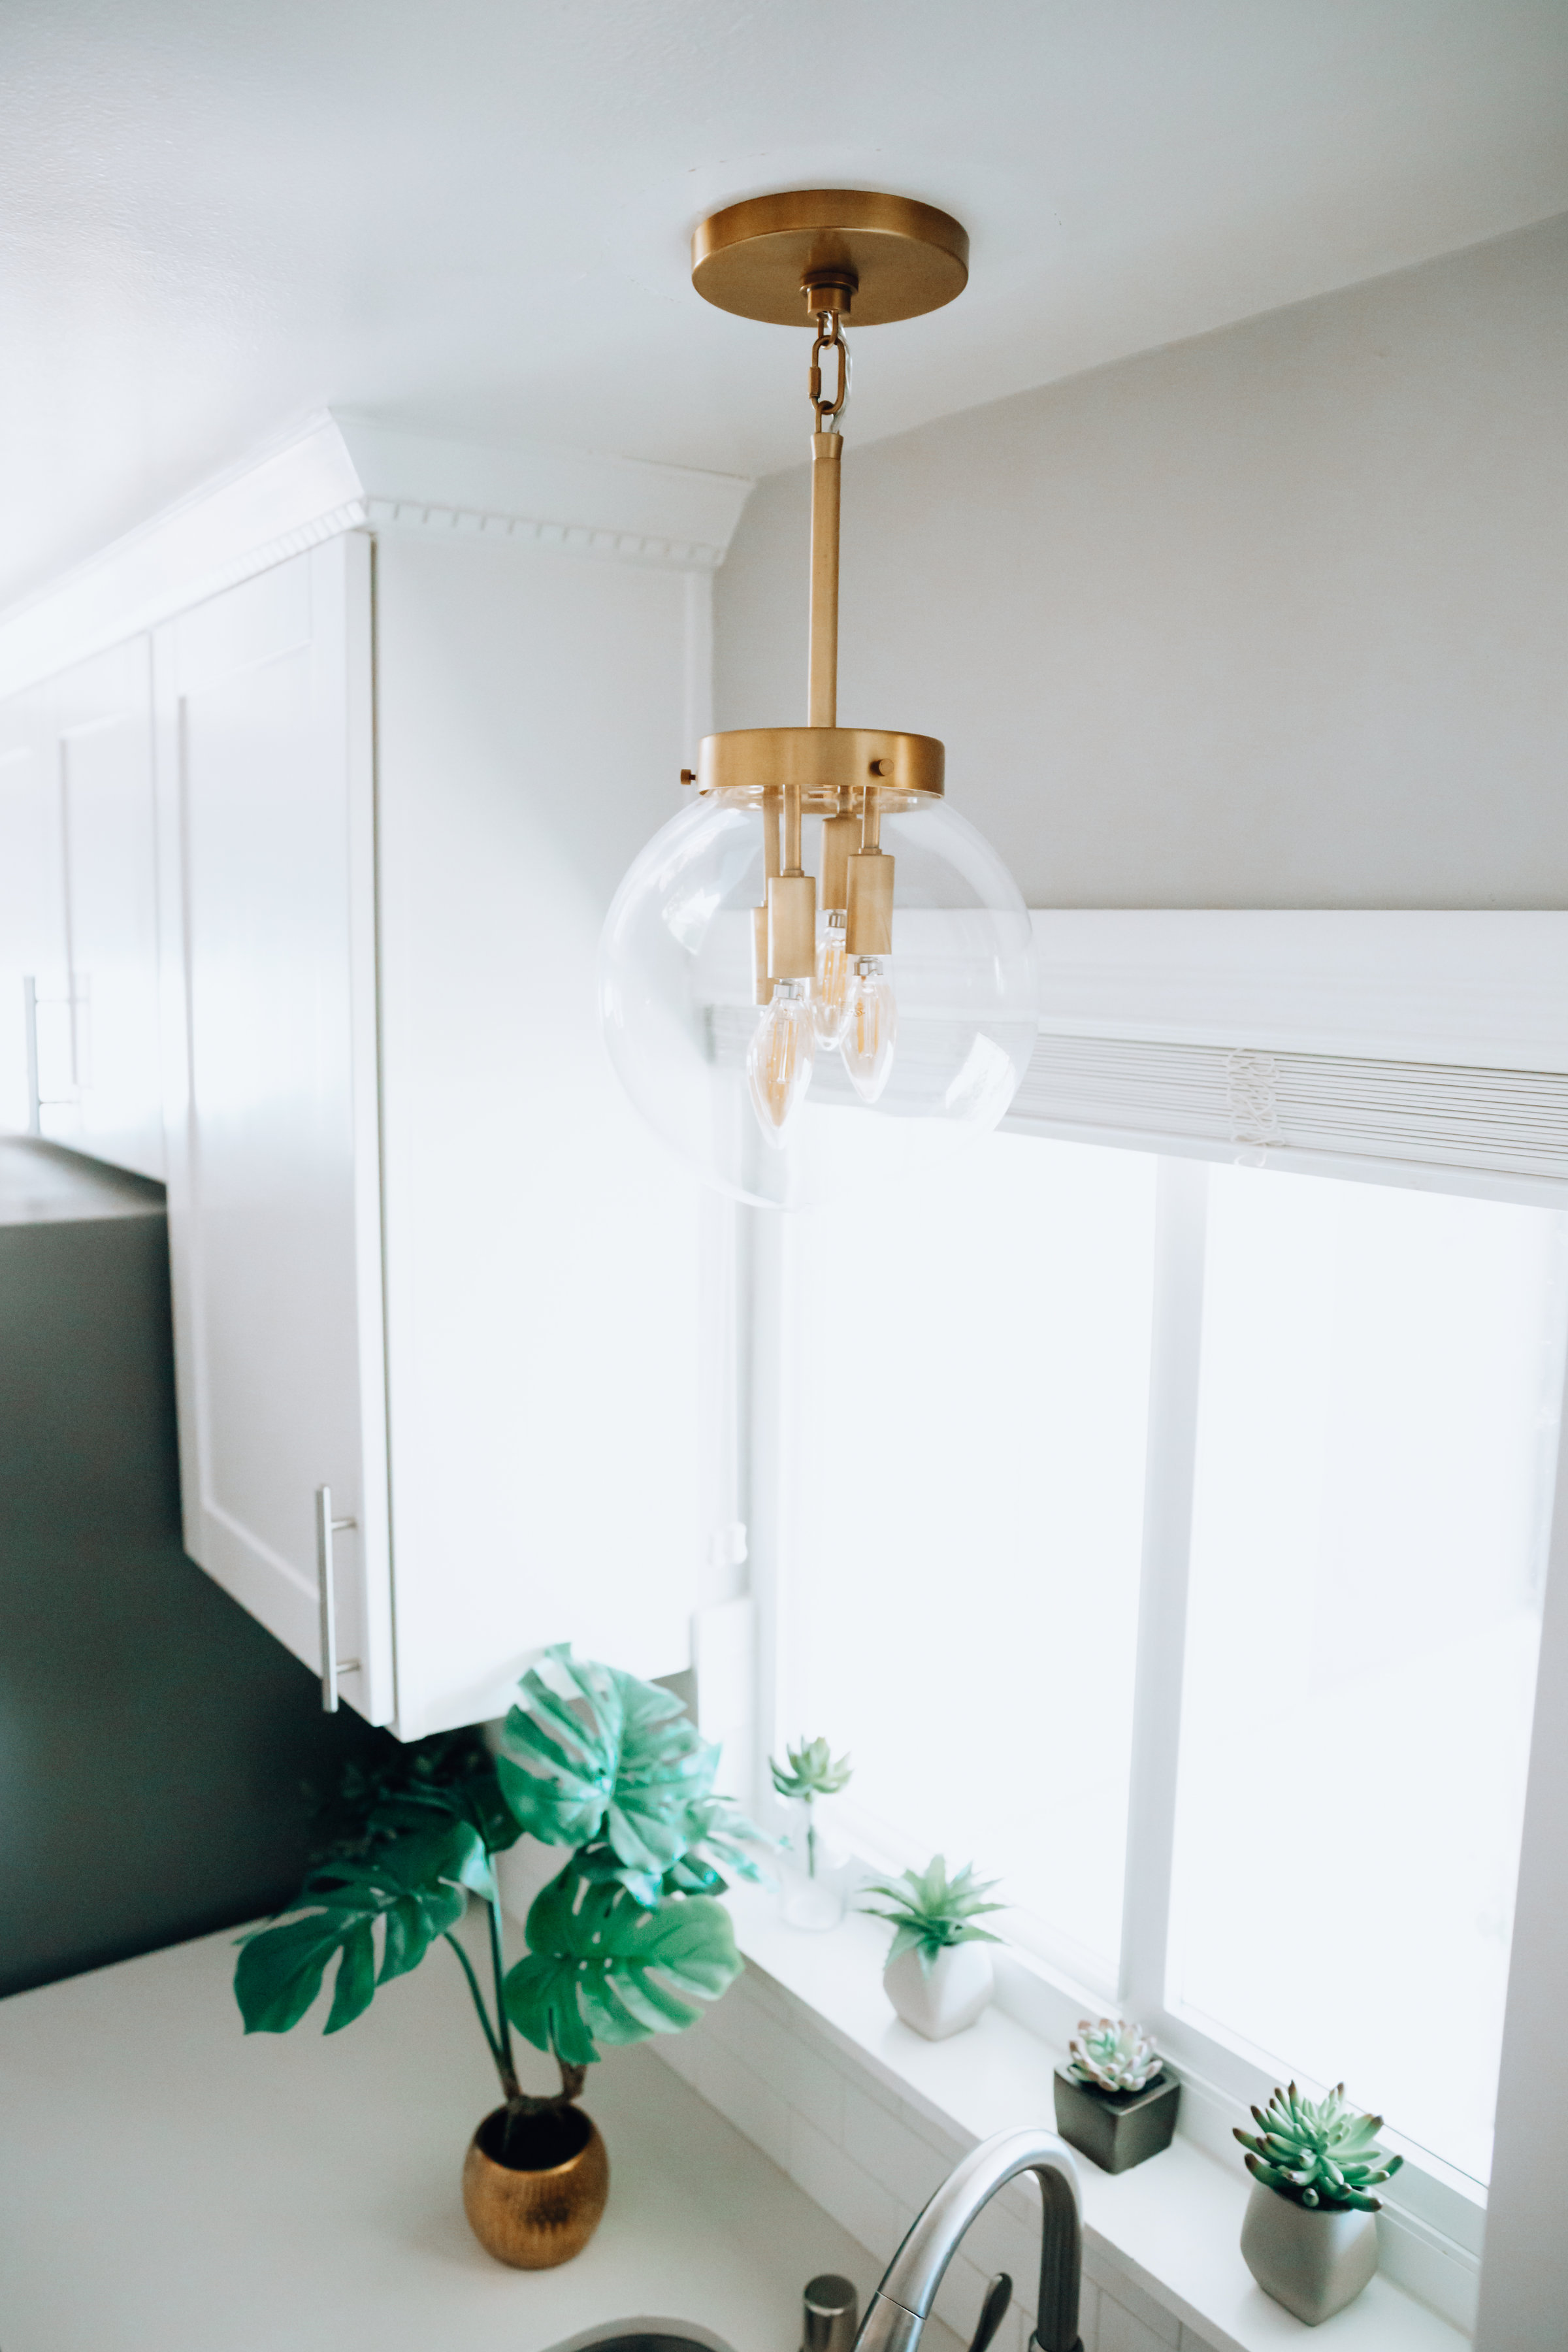 All New Lamps Plus Lighting Home Decor For The Love